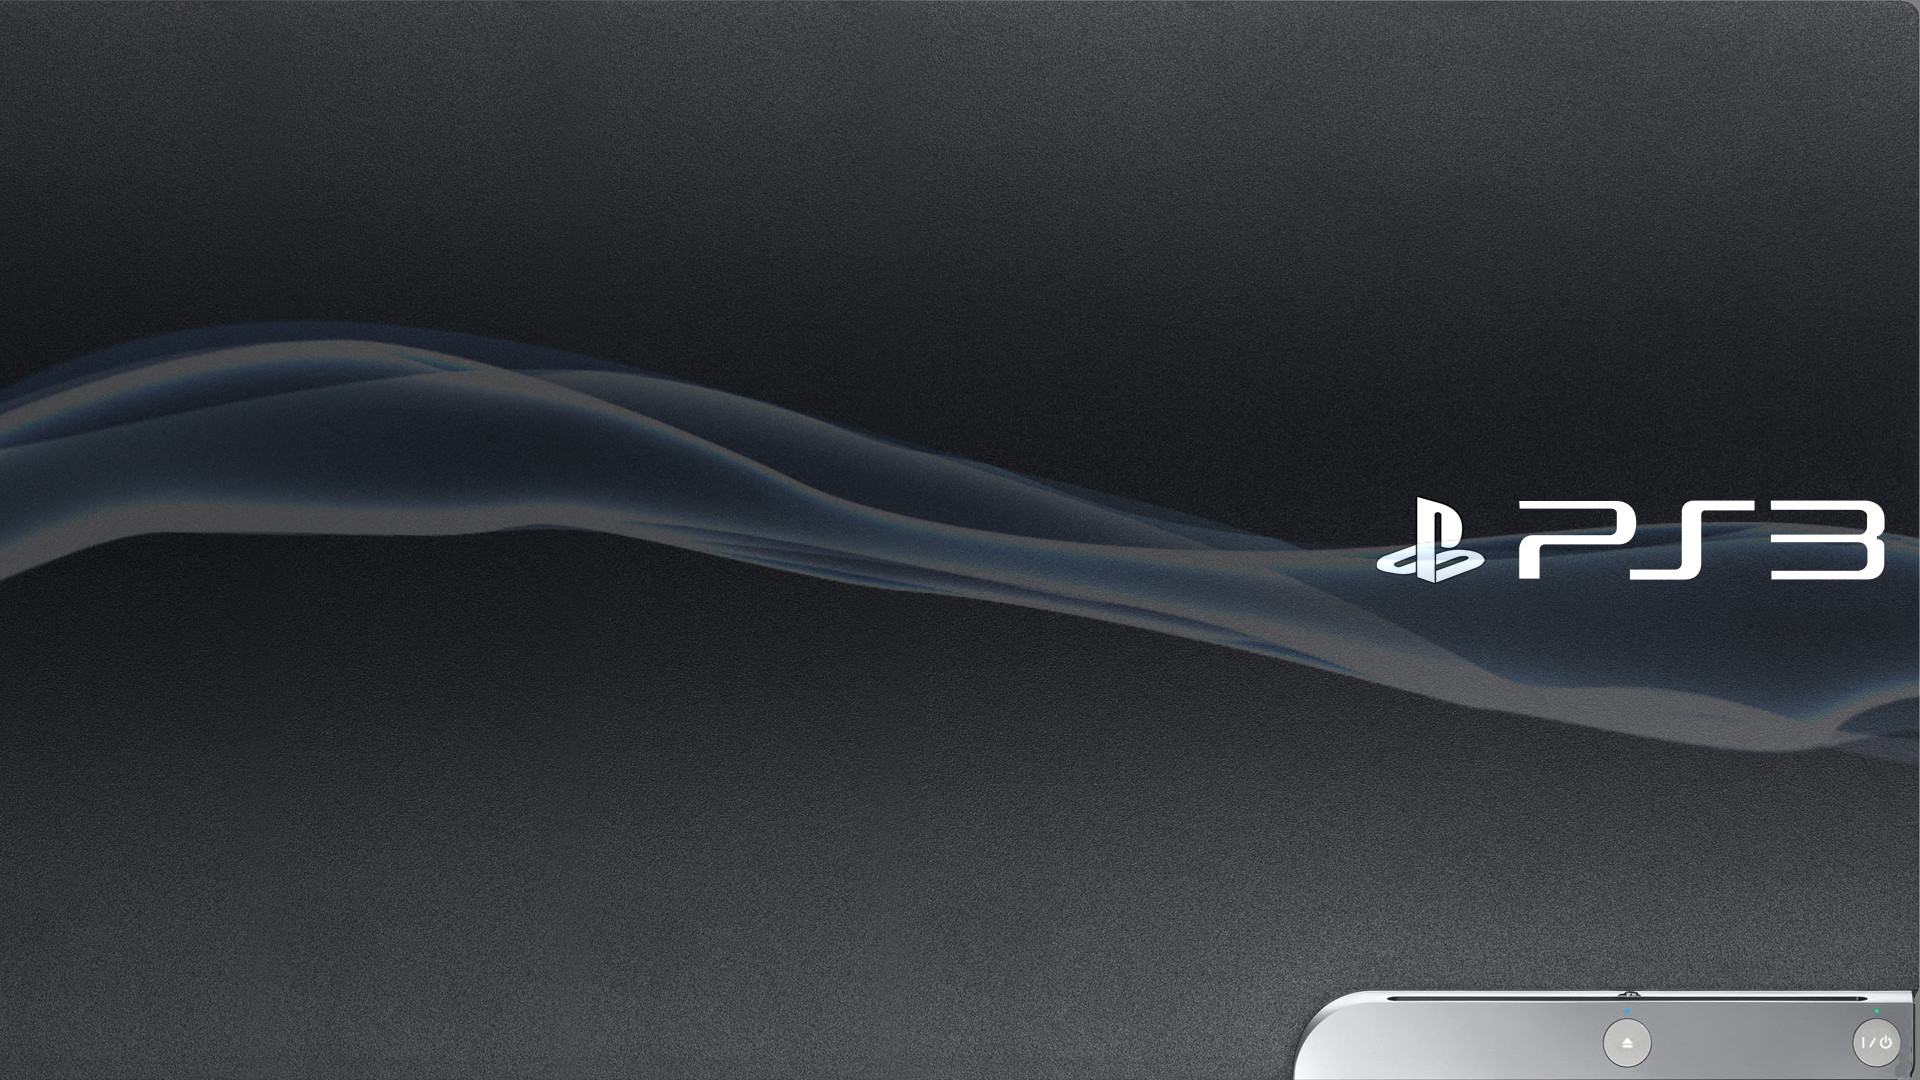 playstation 3 wallpapers 1080p (61+ images)